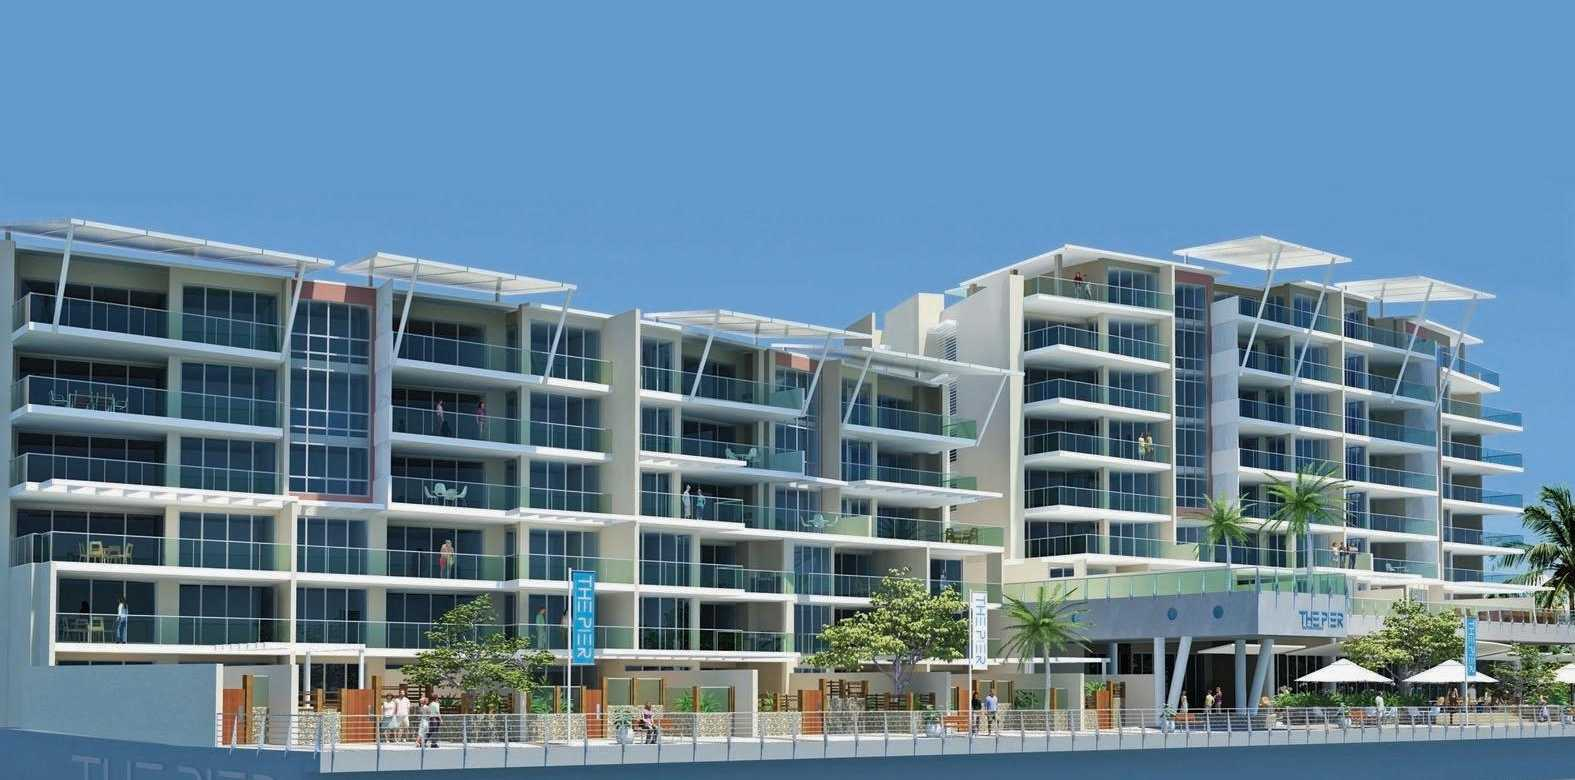 An artist's impression of Graham Caracciolo's proposed development, The Pier.